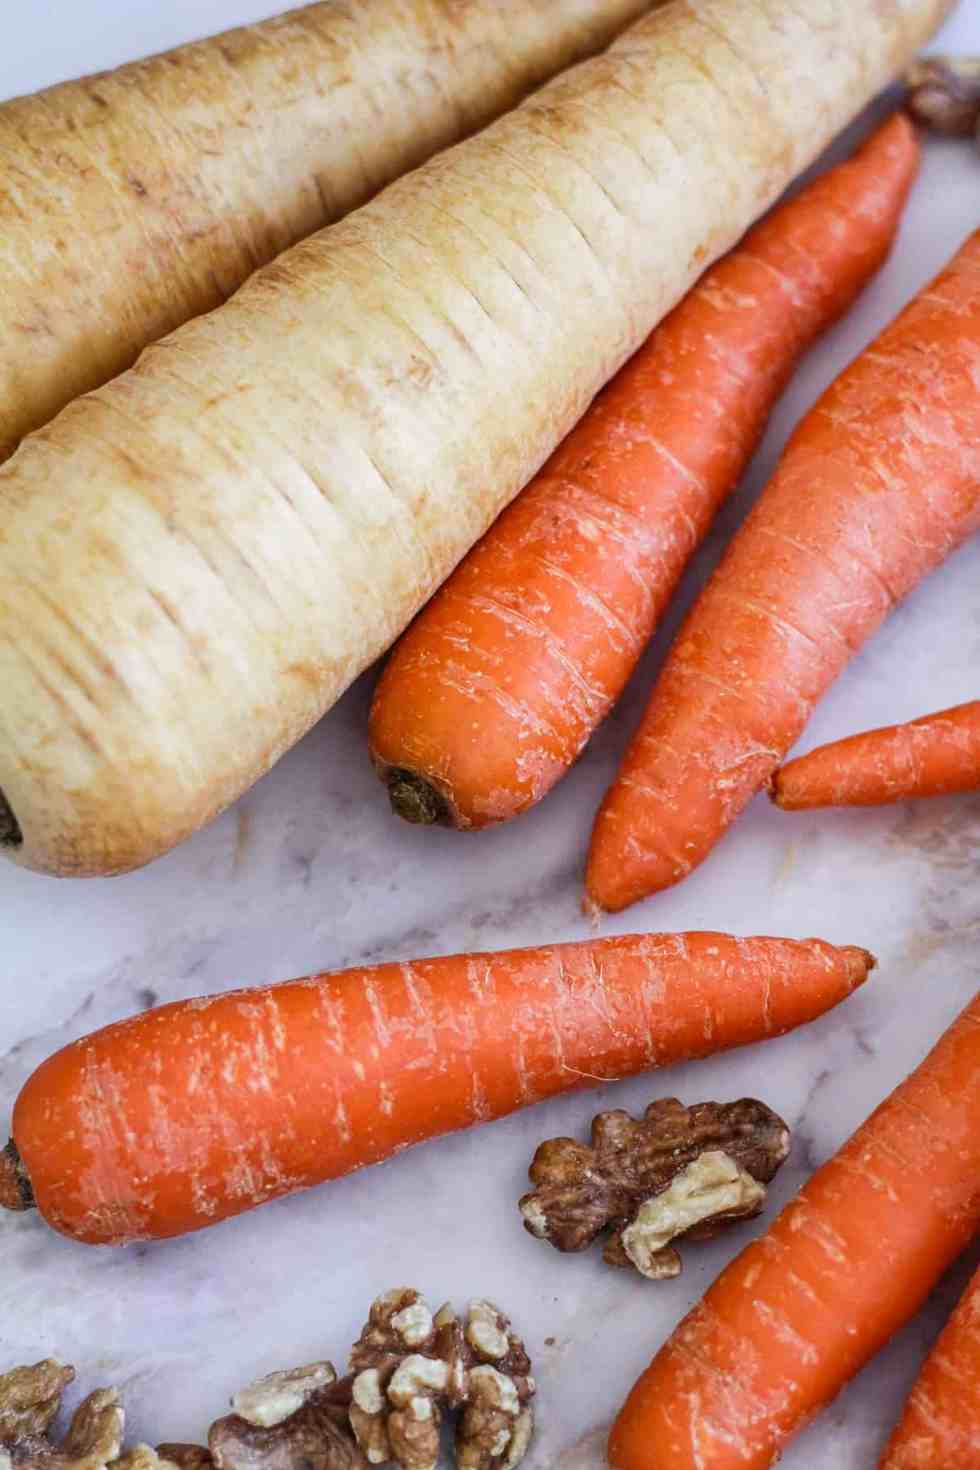 Whole parsnips, whole carrots, and walnuts on white marble.